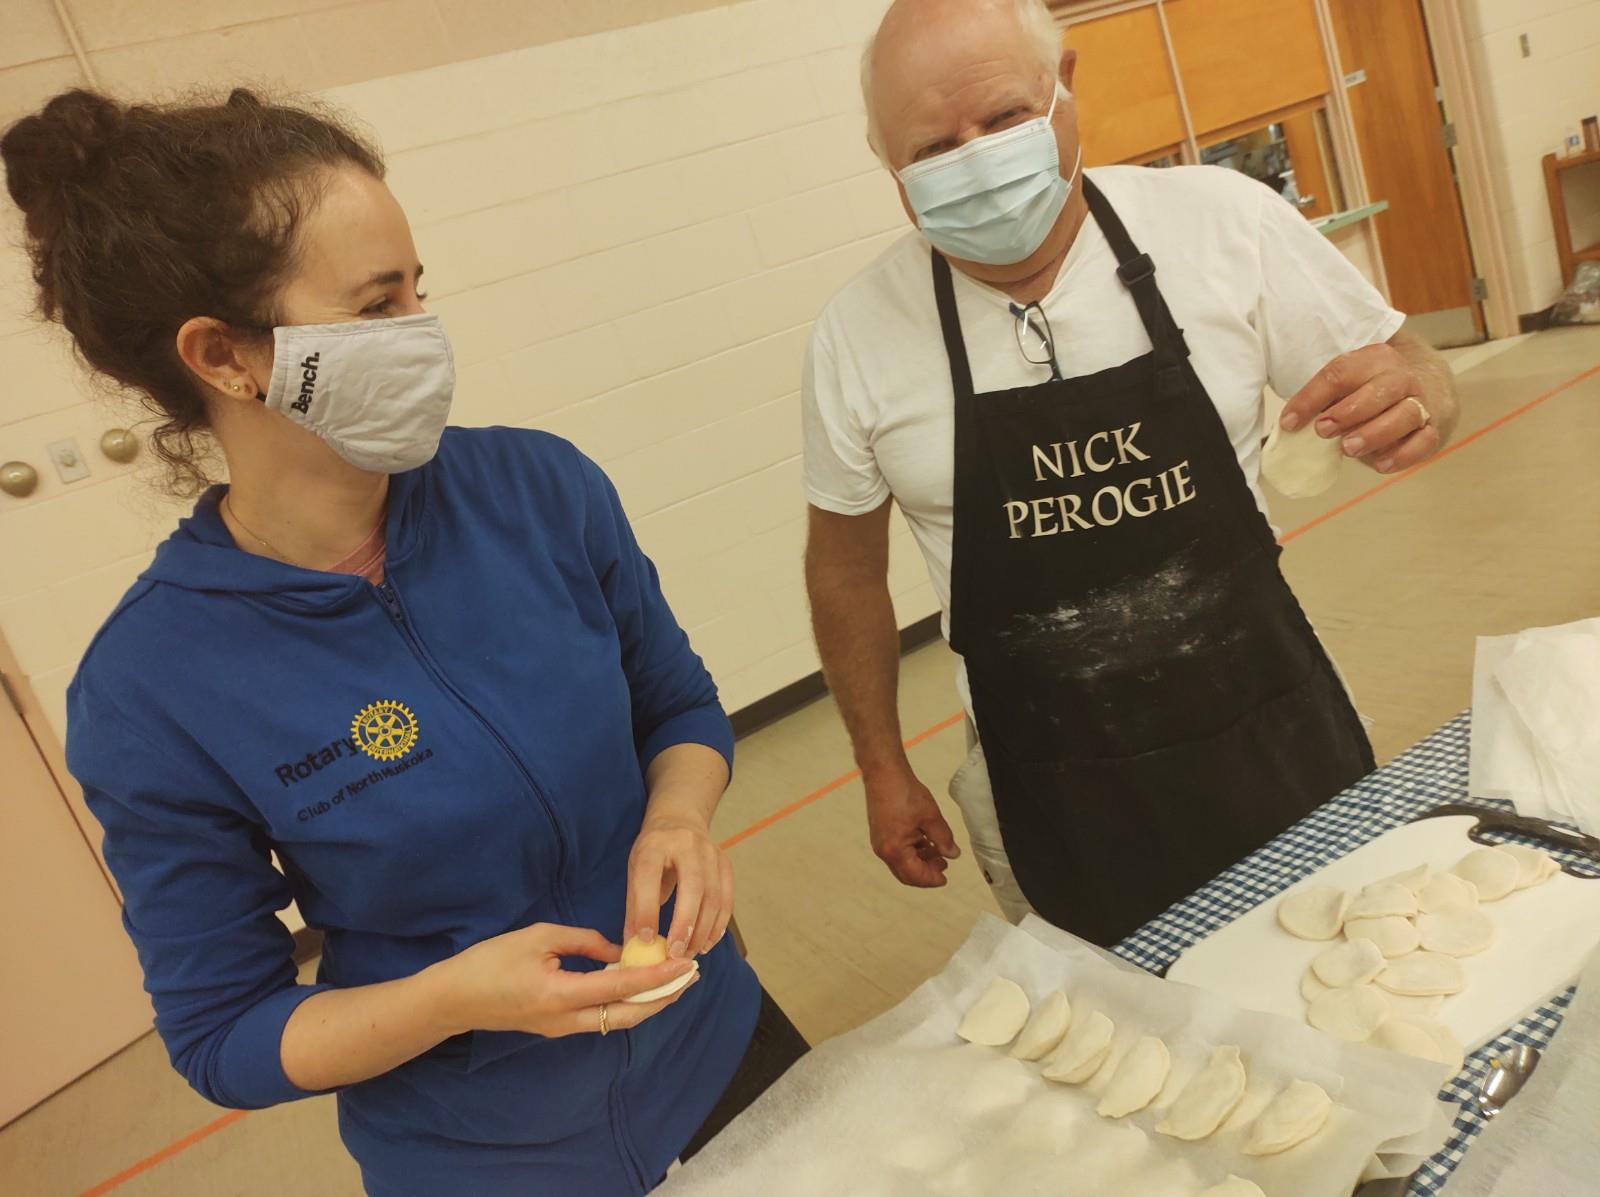 A woman and a man wearing face masks pose for the camera. The woman is wearing a blue shirt with a gold Rotary logo on it. The man is wearing an apron with a bit of flour on it. The apron reads: Nick Perogie.